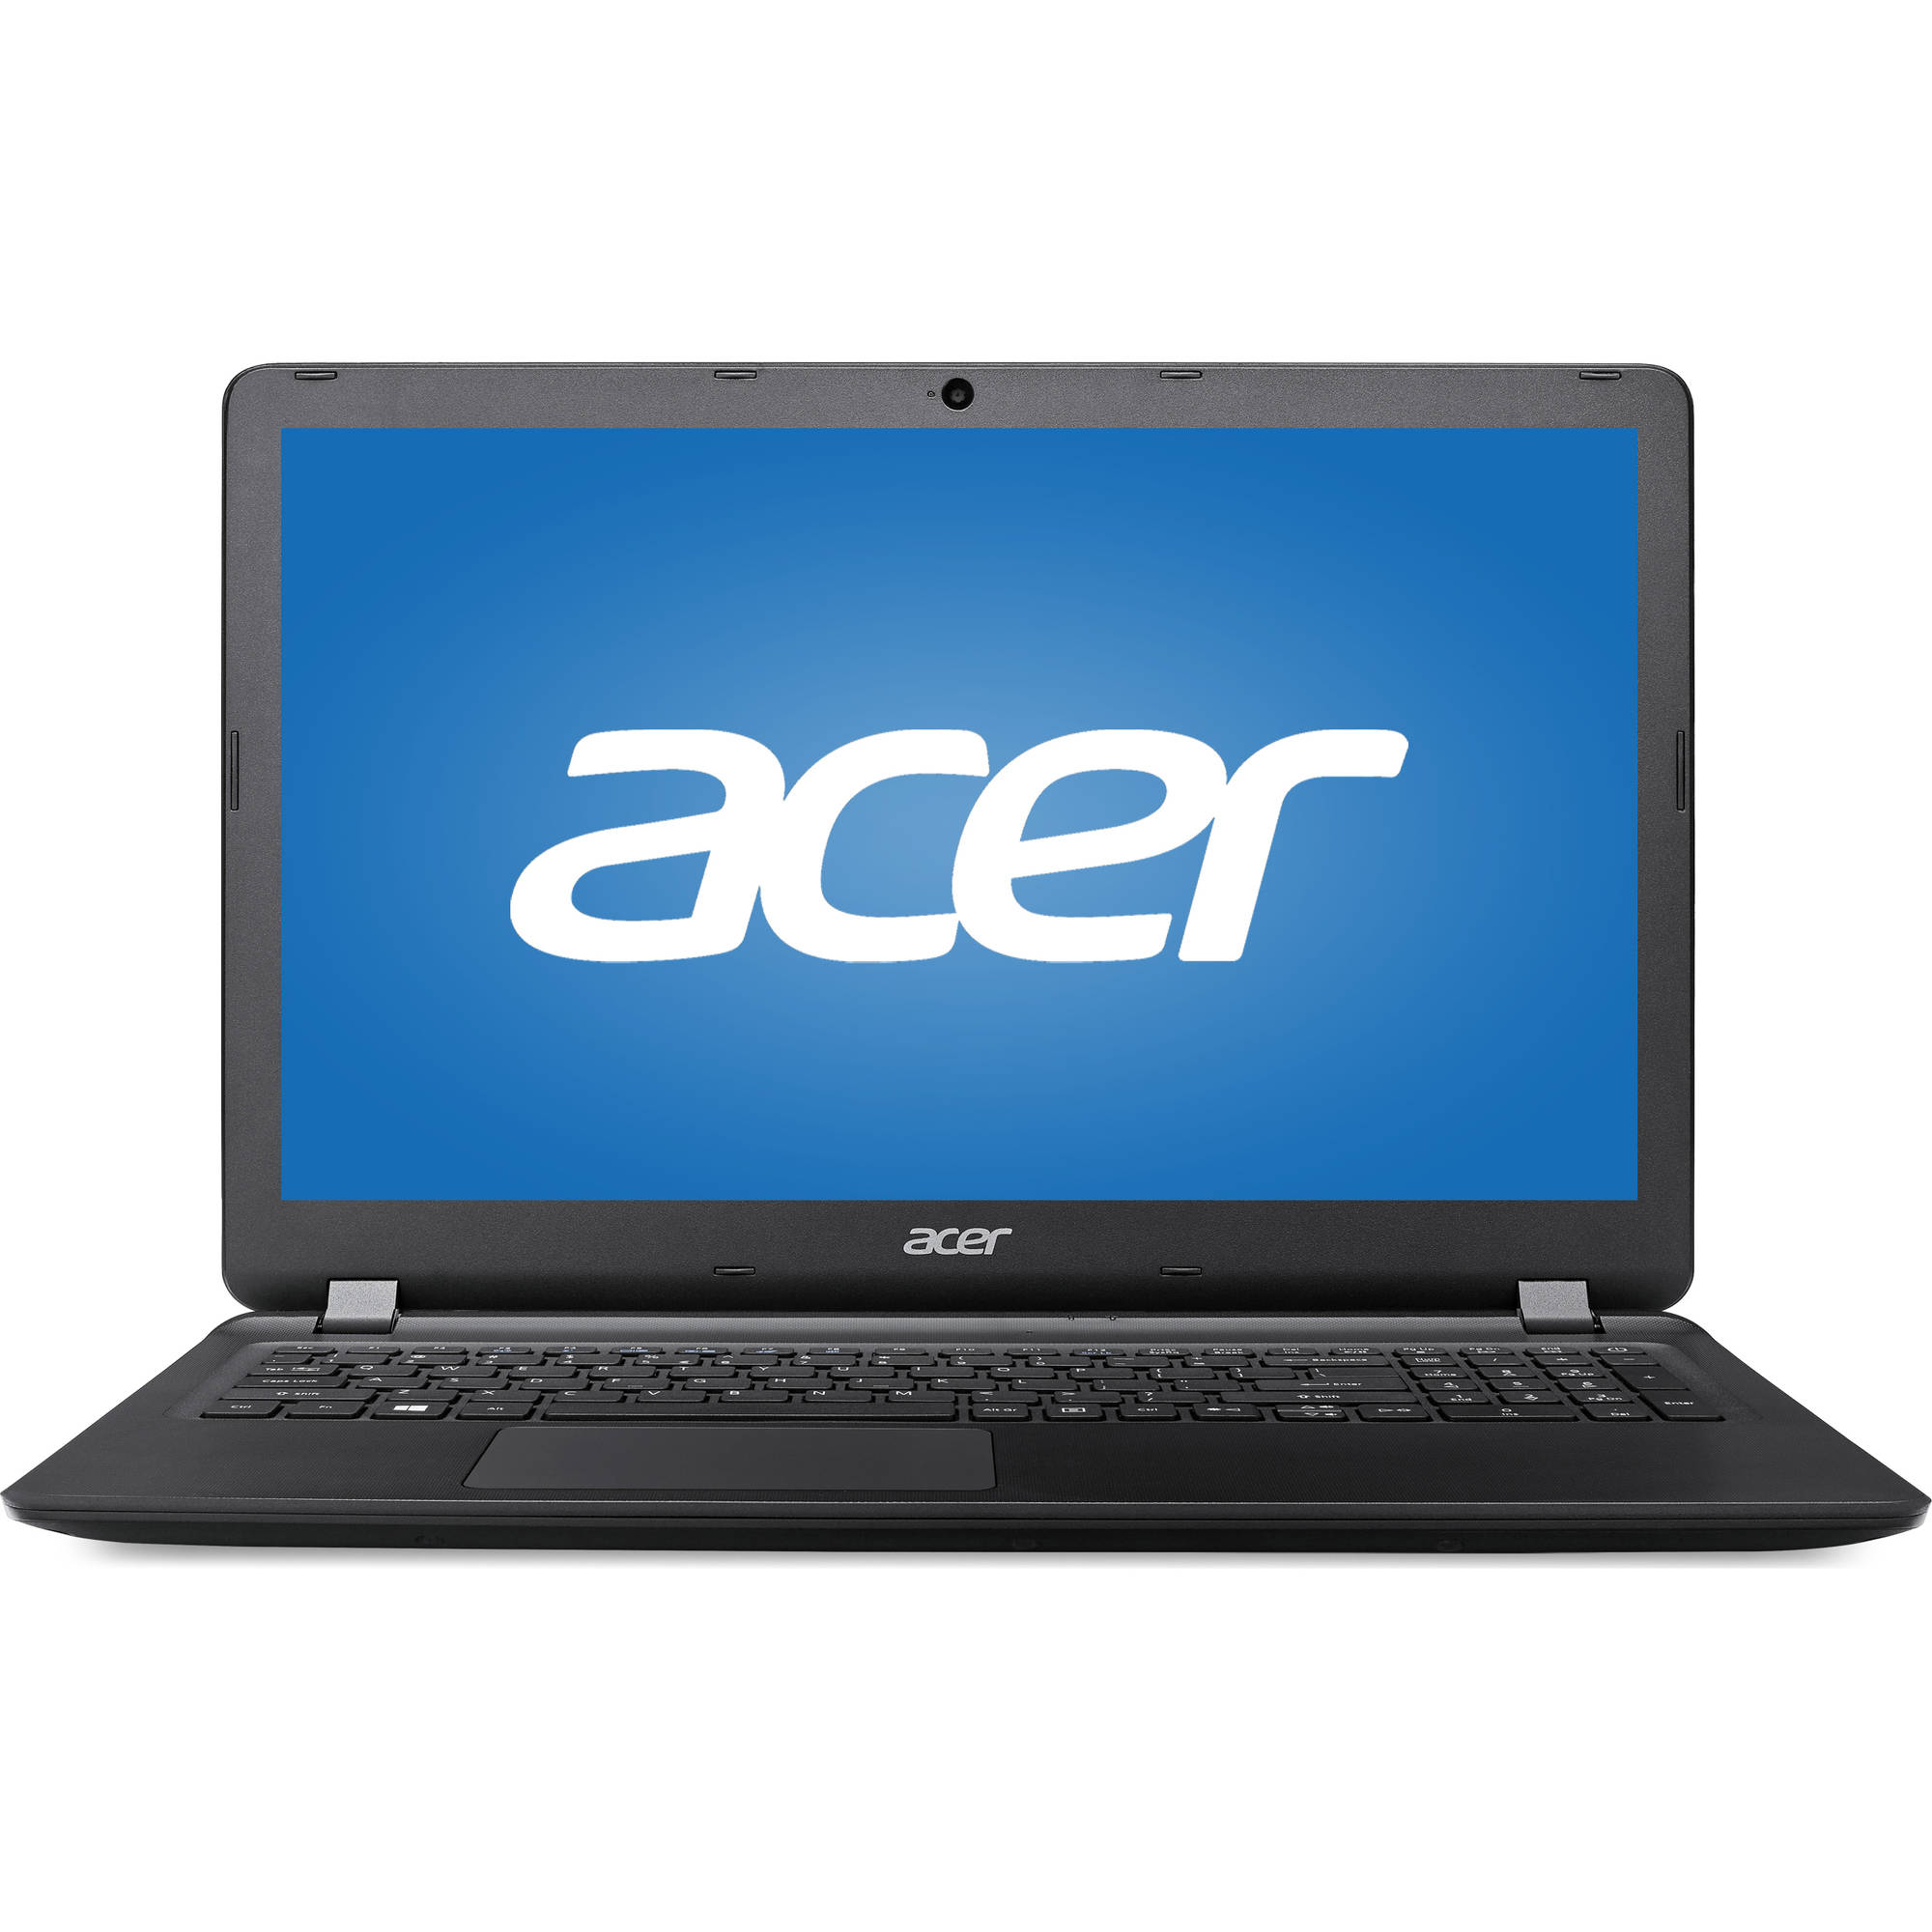 "Click here to buy Acer Aspire ES1-533-C3VD 15.6"" Laptop, Windows 10 Home, Intel Celeron N3350 Processor, 4GB RAM, 500GB Hard Drive by Acer."